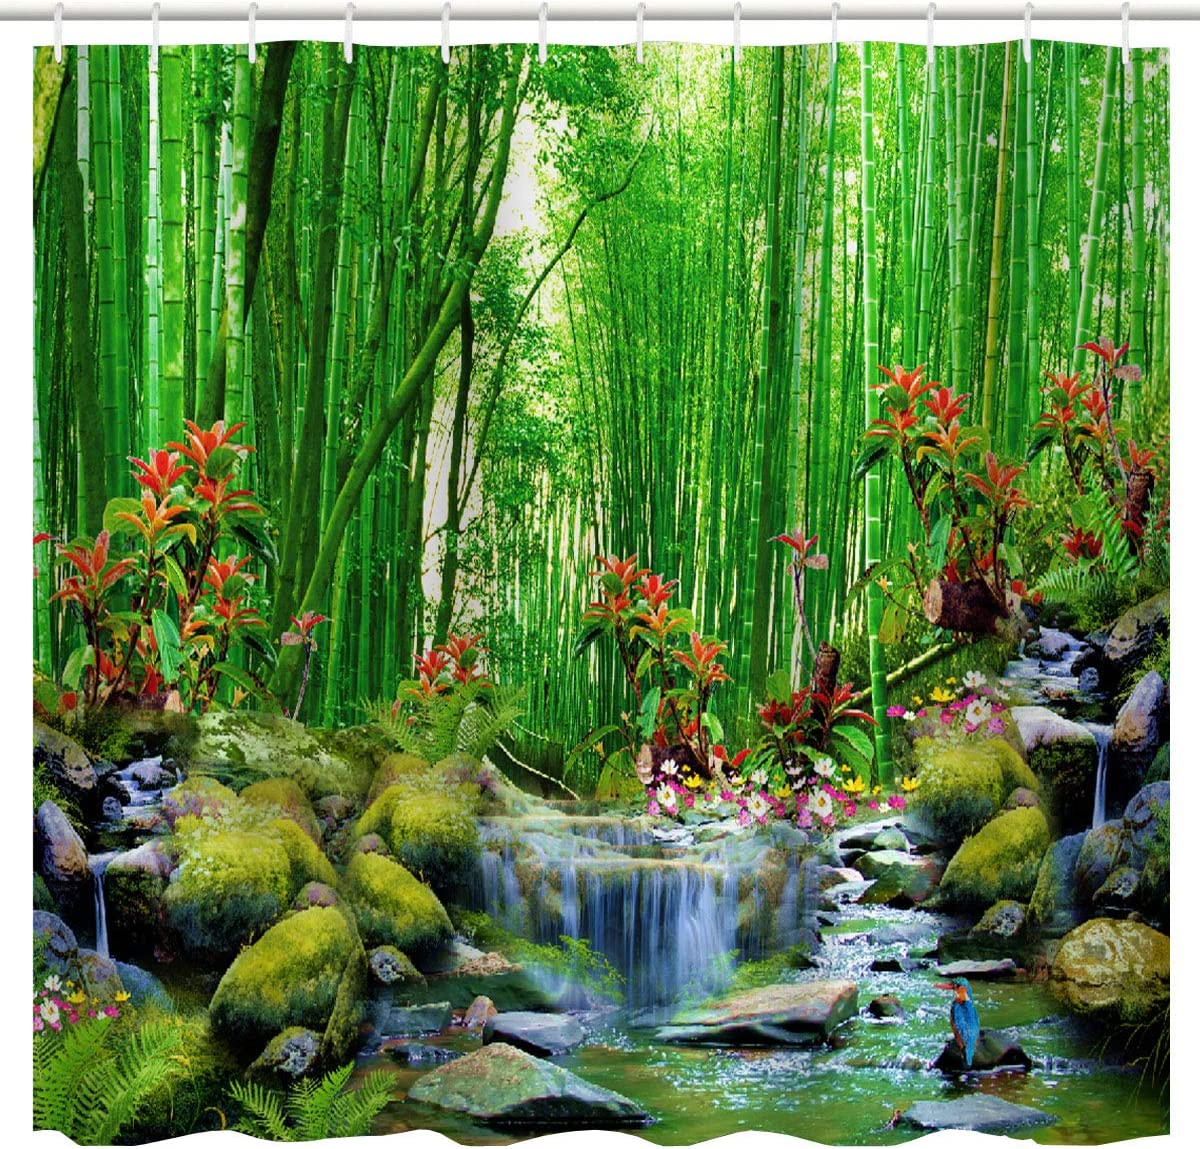 BROSHAN Bamboo Forest Shower Curtain Fabric, Summer Outdoor Forest Jungle Waterfall Rock Nature Scenery Bath Curtain Art Printing, Green Landscape Bathroom Fabric Accessories Set with Hooks,72 x 2